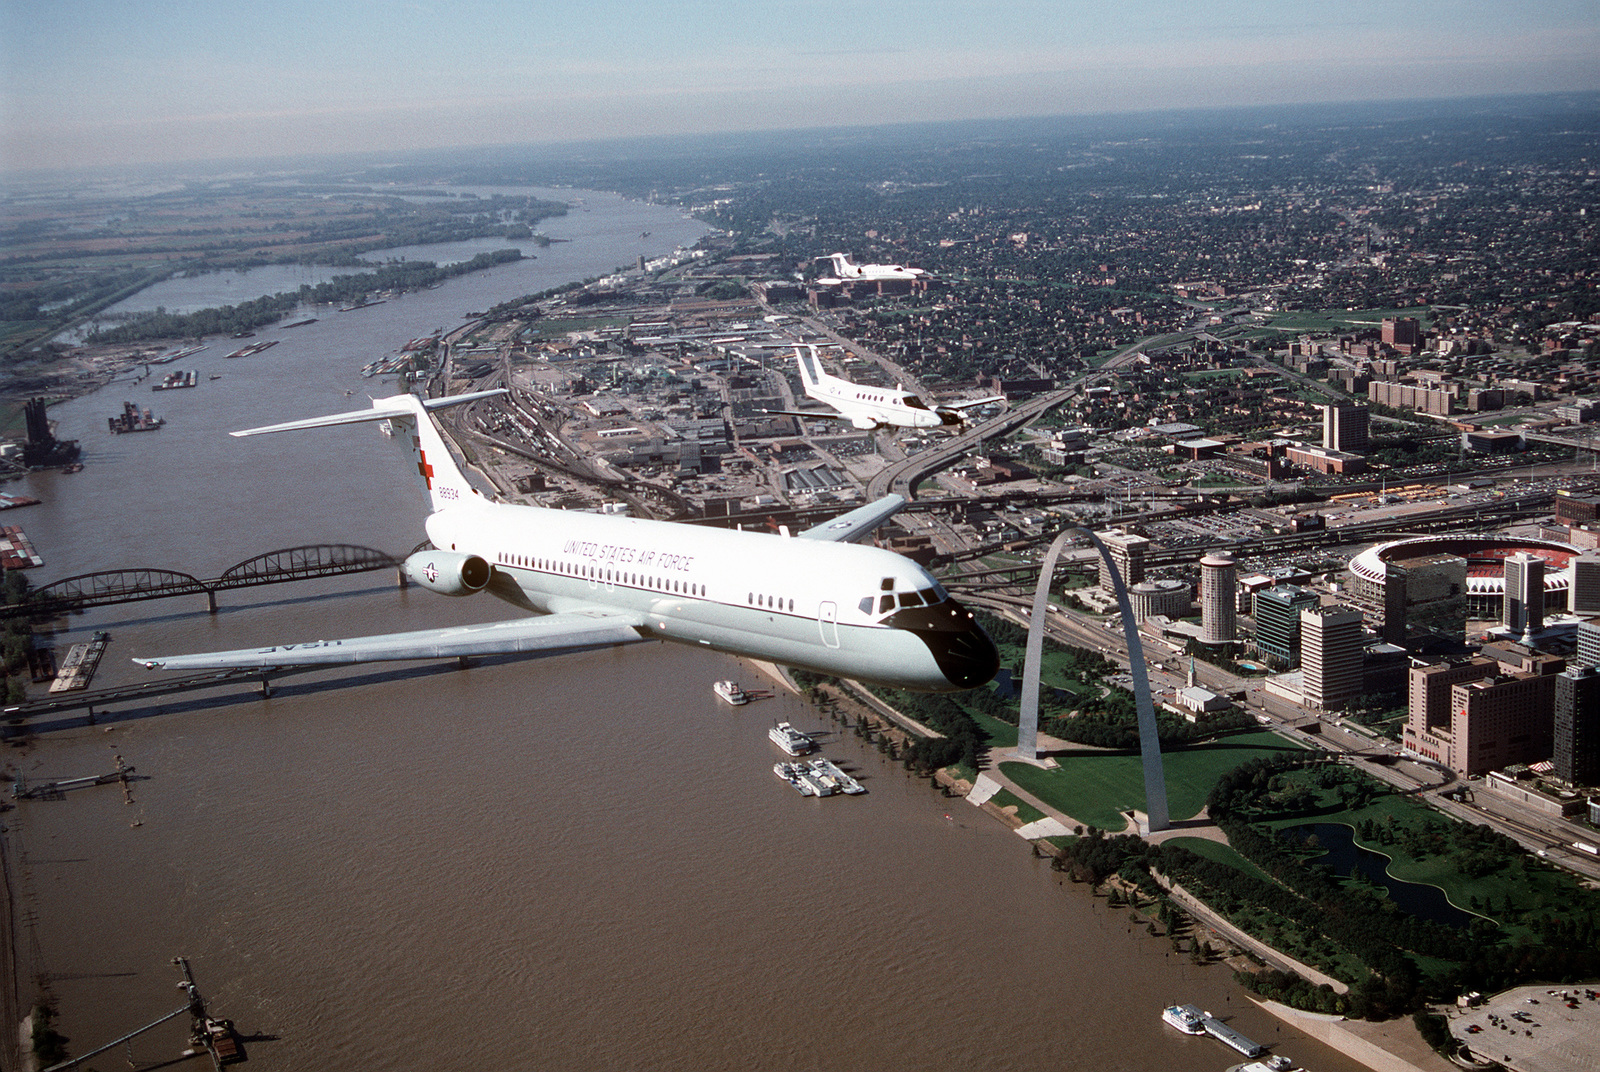 An air-to-air, three quarter front view of a McDonnell Douglas-built C-9A Nightingale aircraft leading a formation that includes a Beech Aircraft built C-12F and a Lear Jet built C-21A. The training flight is over the famous St. Louis Arch along the banks of the Mississippi River. All aircraft are from the 375th Airlift Wing, Air Mobility Command